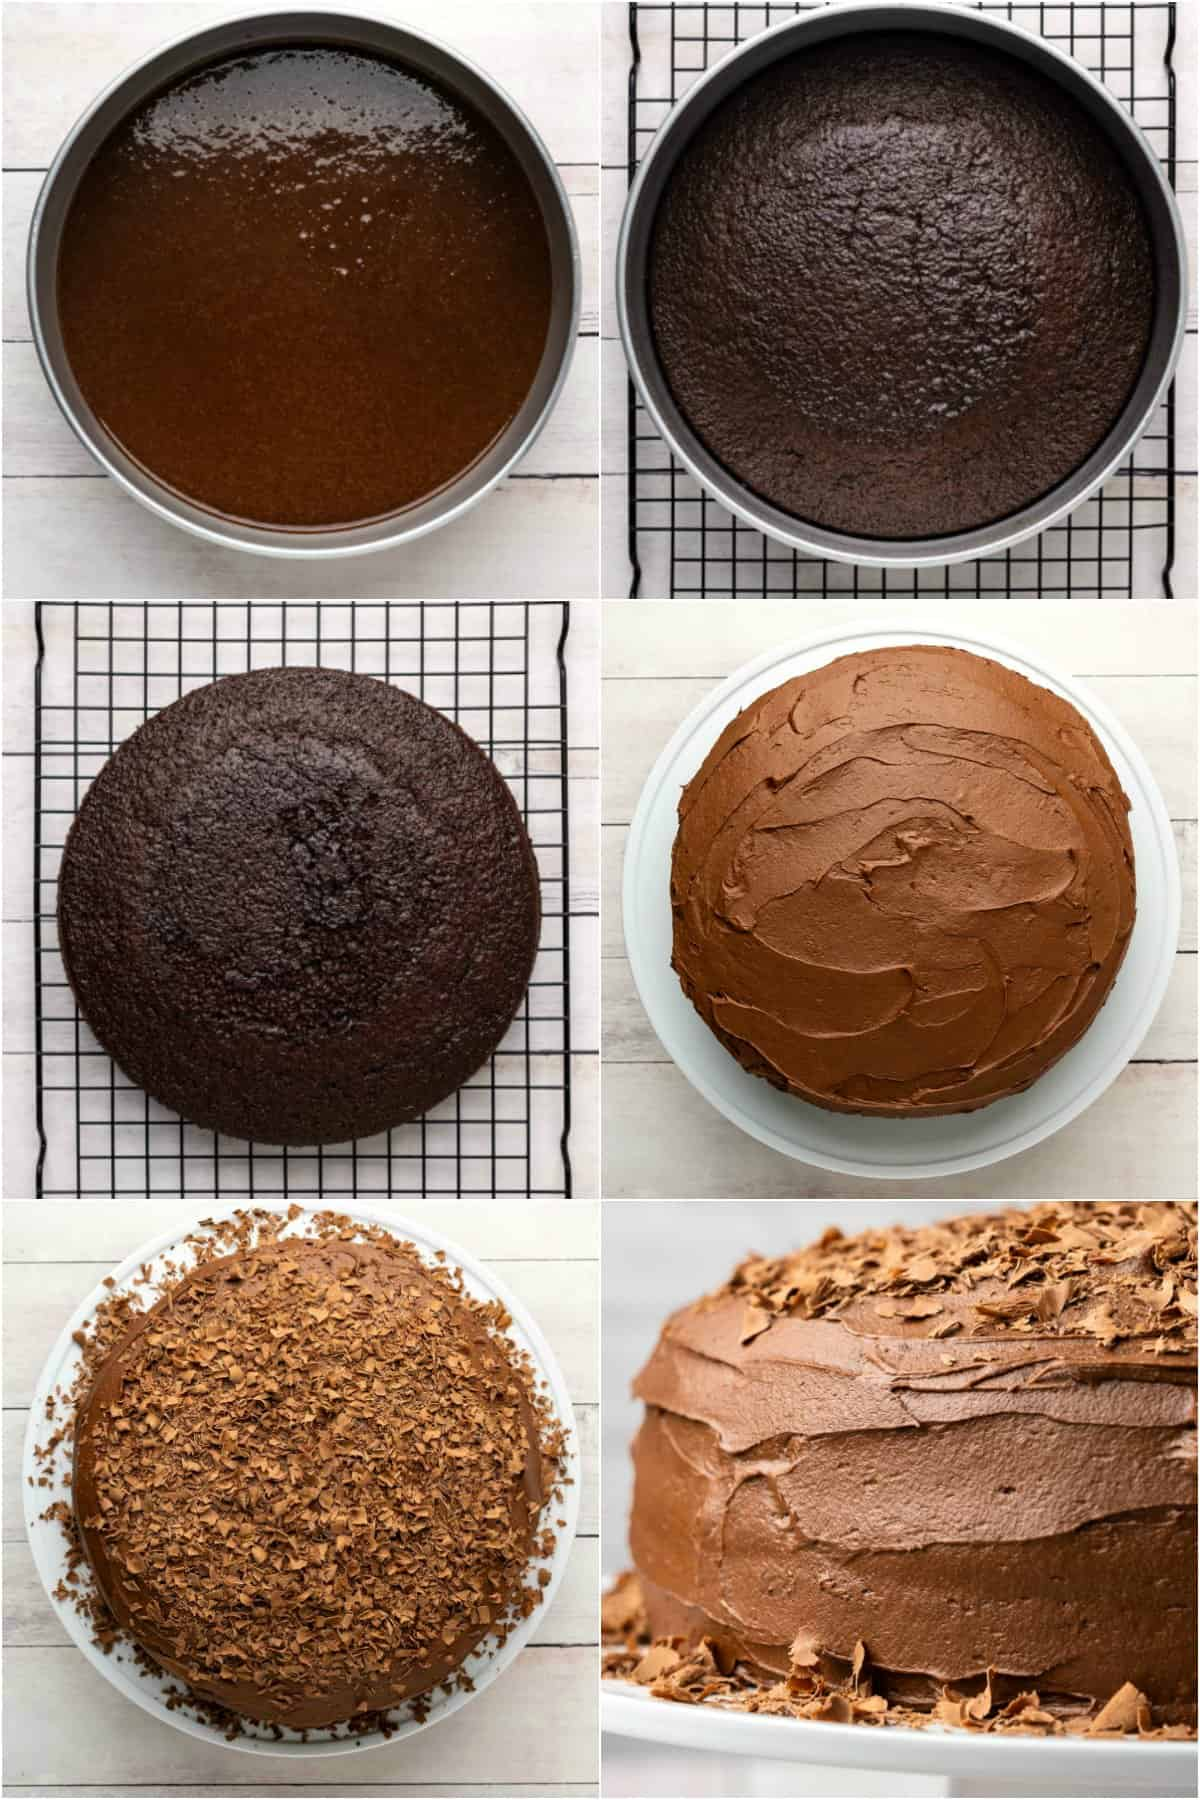 Step by step process photo collage of making a chocolate cake.